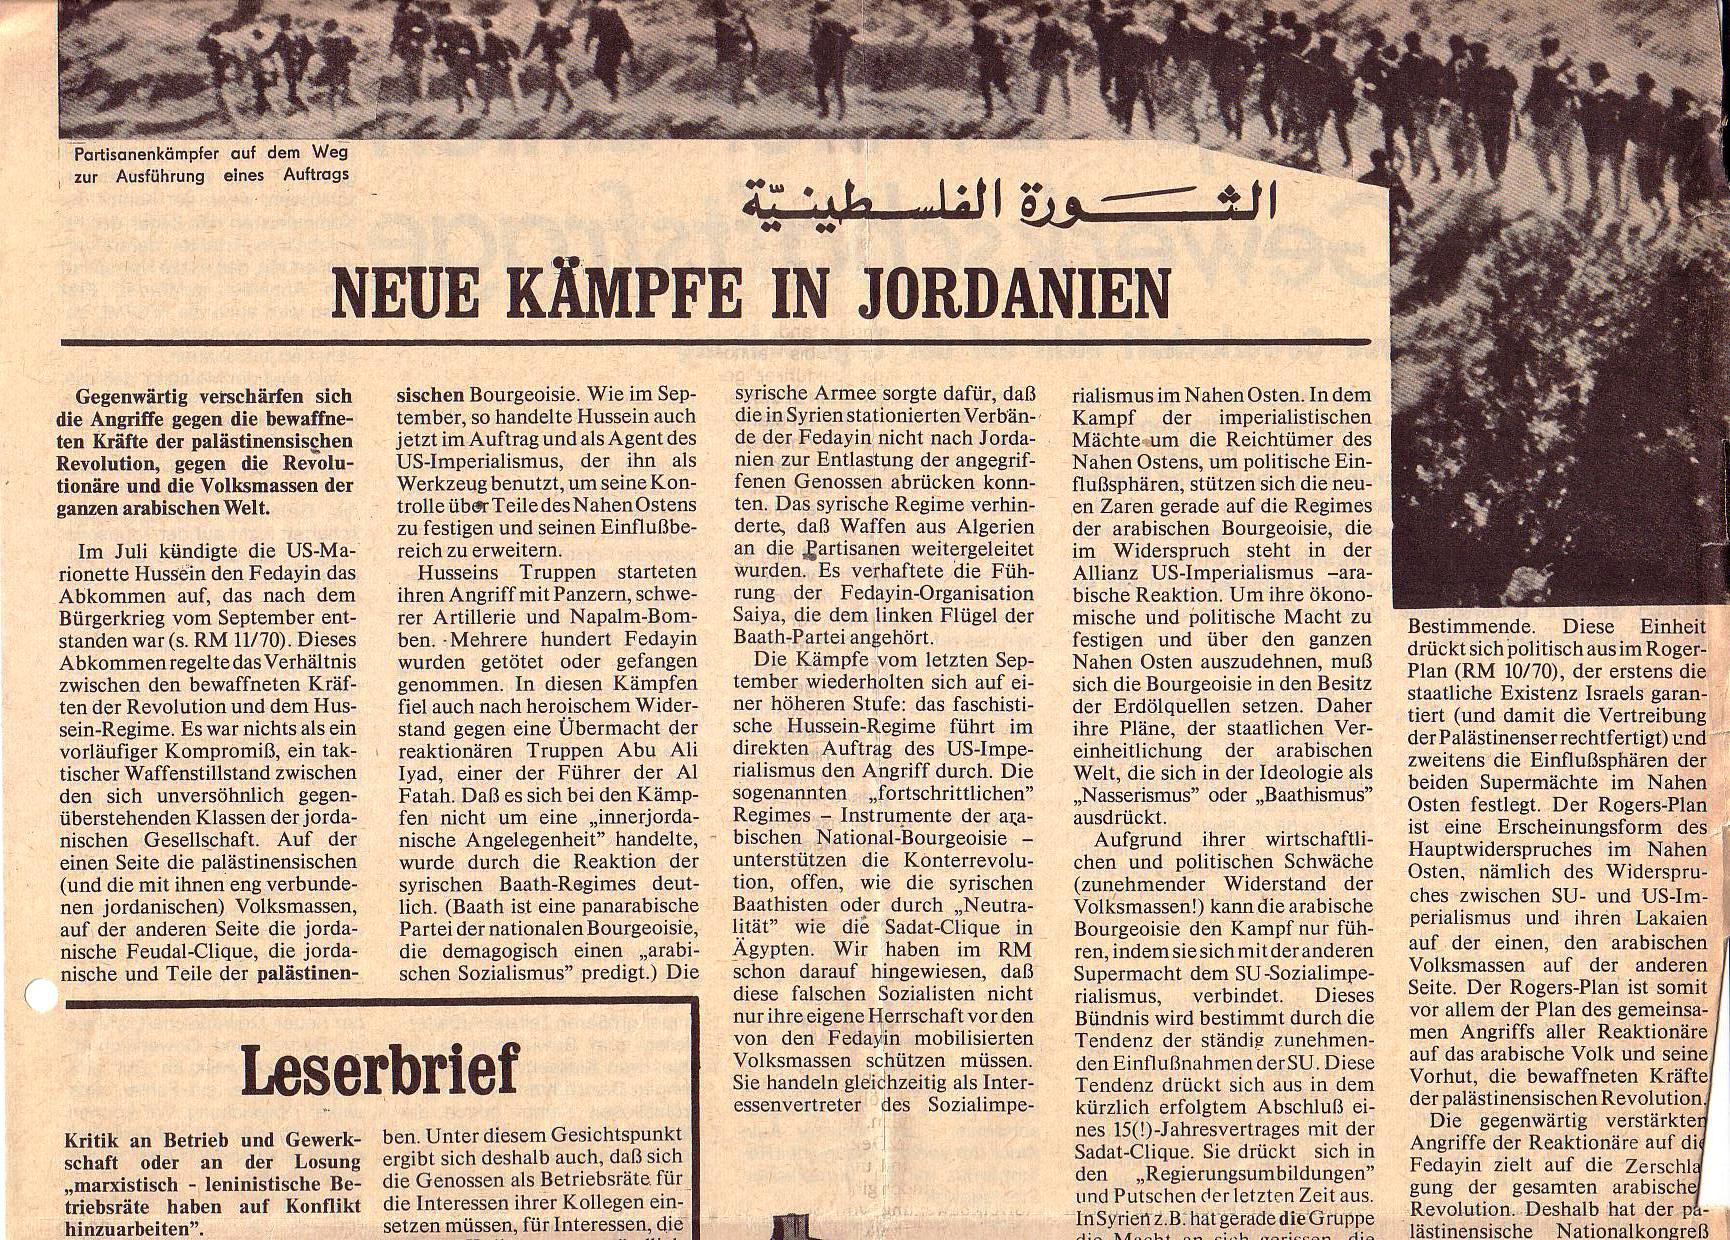 Roter Morgen, 5. Jg., August 1971, Nr. 8, Seite 5a